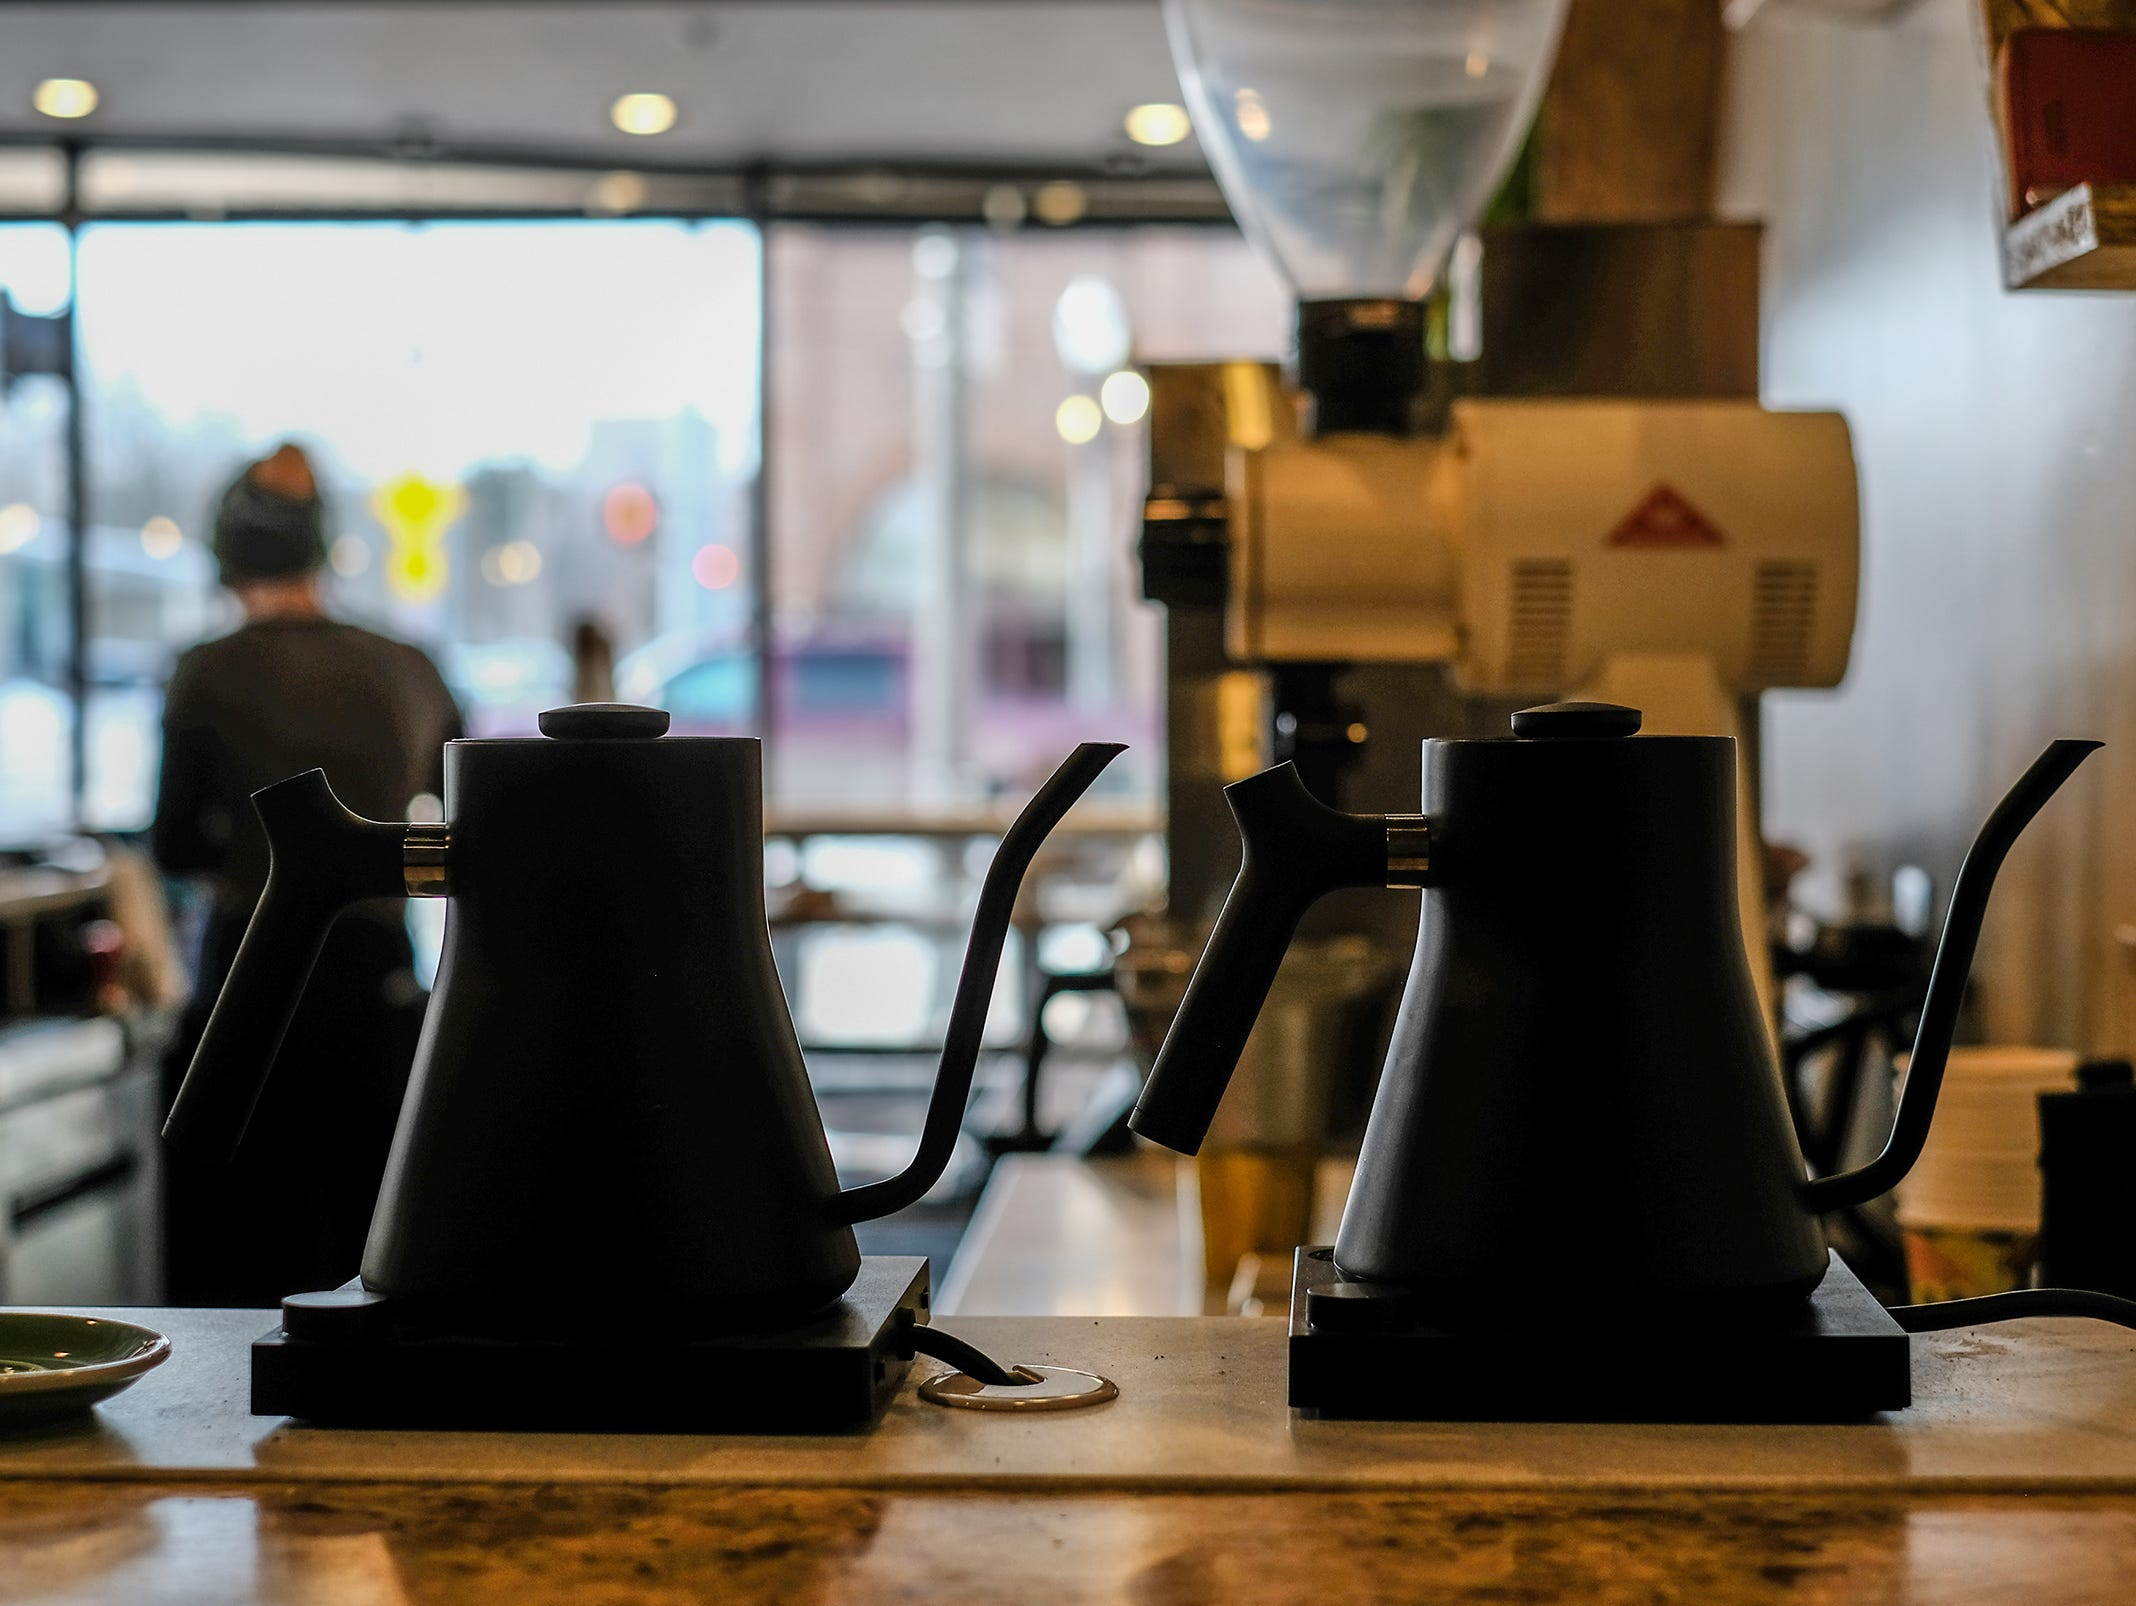 Hot water kettles are ready for a pour-over at Strange Matter Coffee in downtown Lansing.